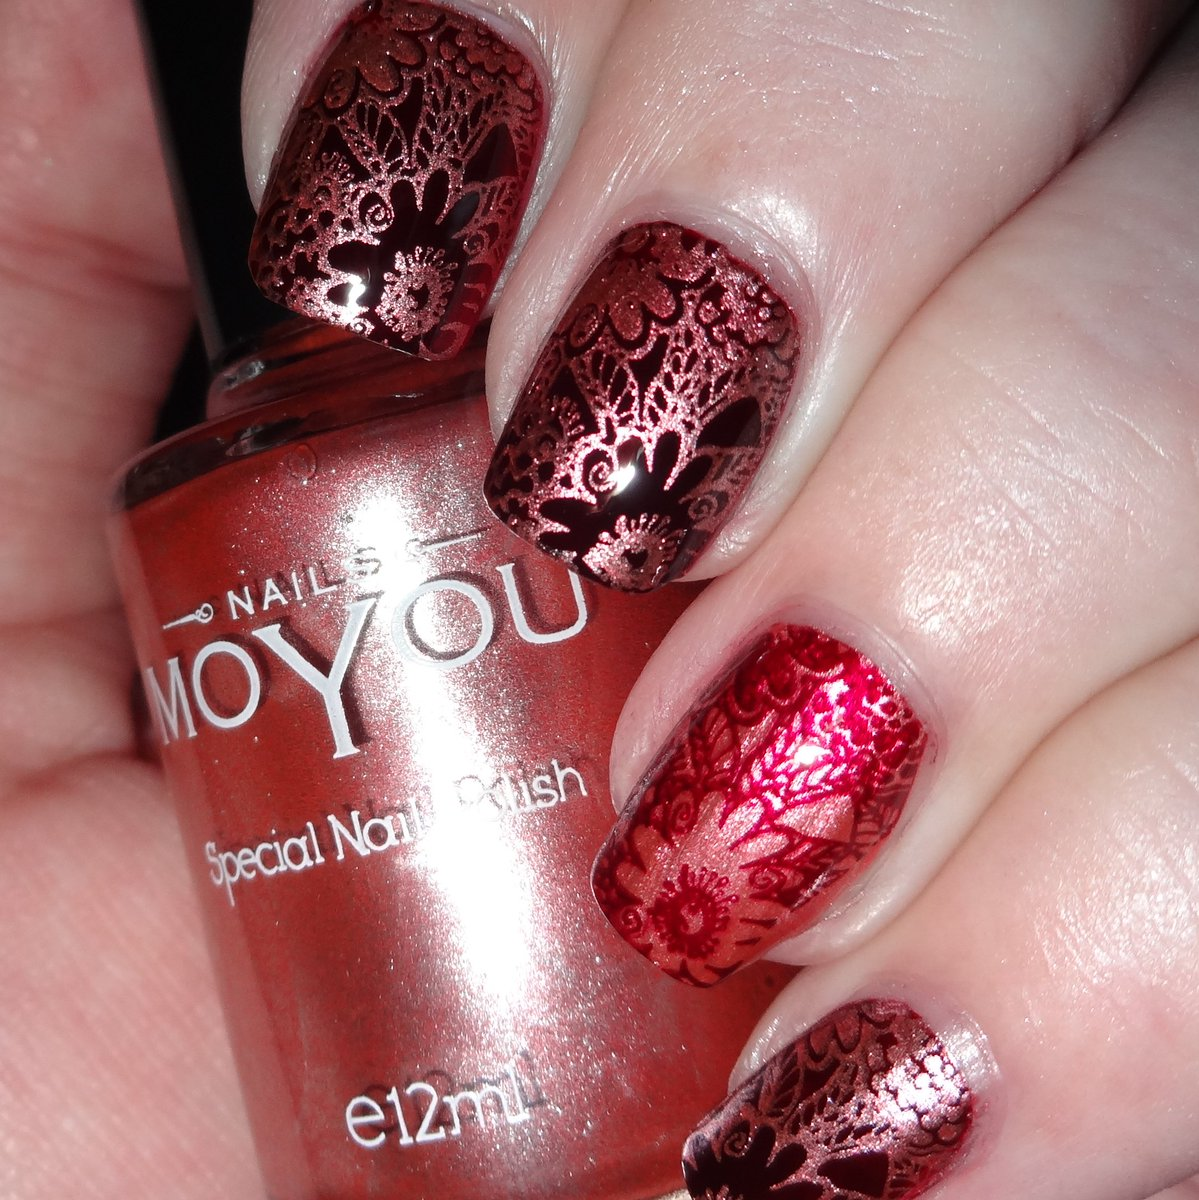 Wendy Stanbury On Twitter Moyou Nails Plate 403 Crimson Sky